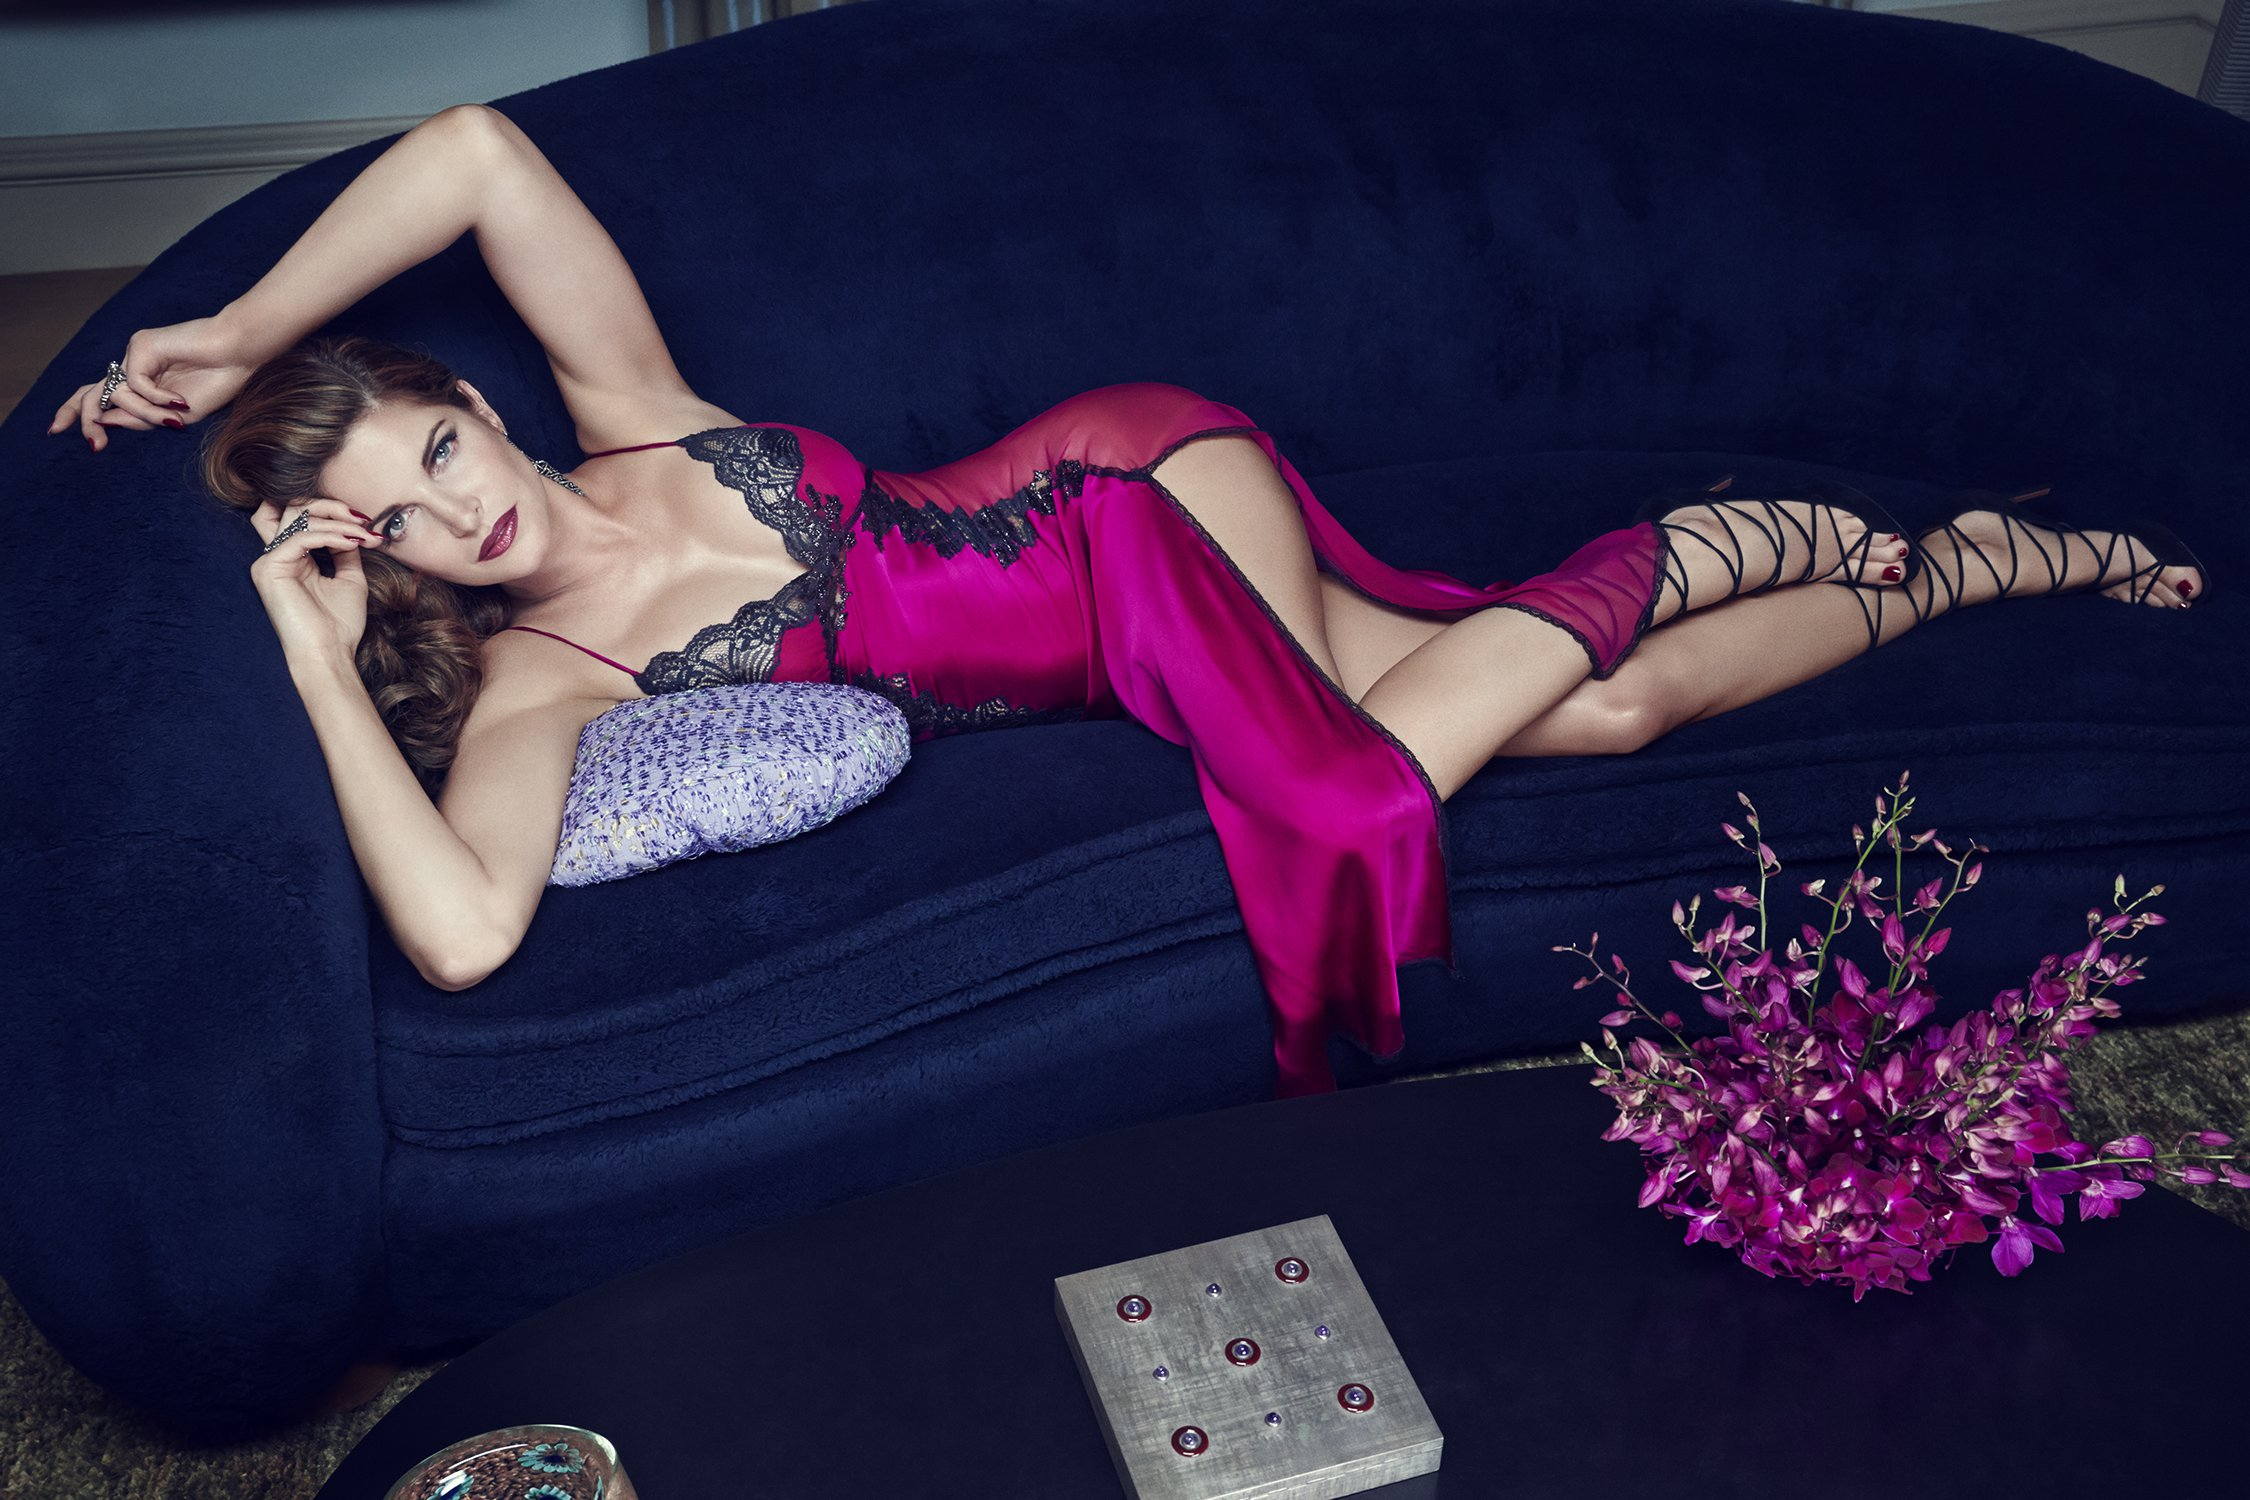 Raven & Sparrow A Luxurious Lingerie by Stephanie Seymour